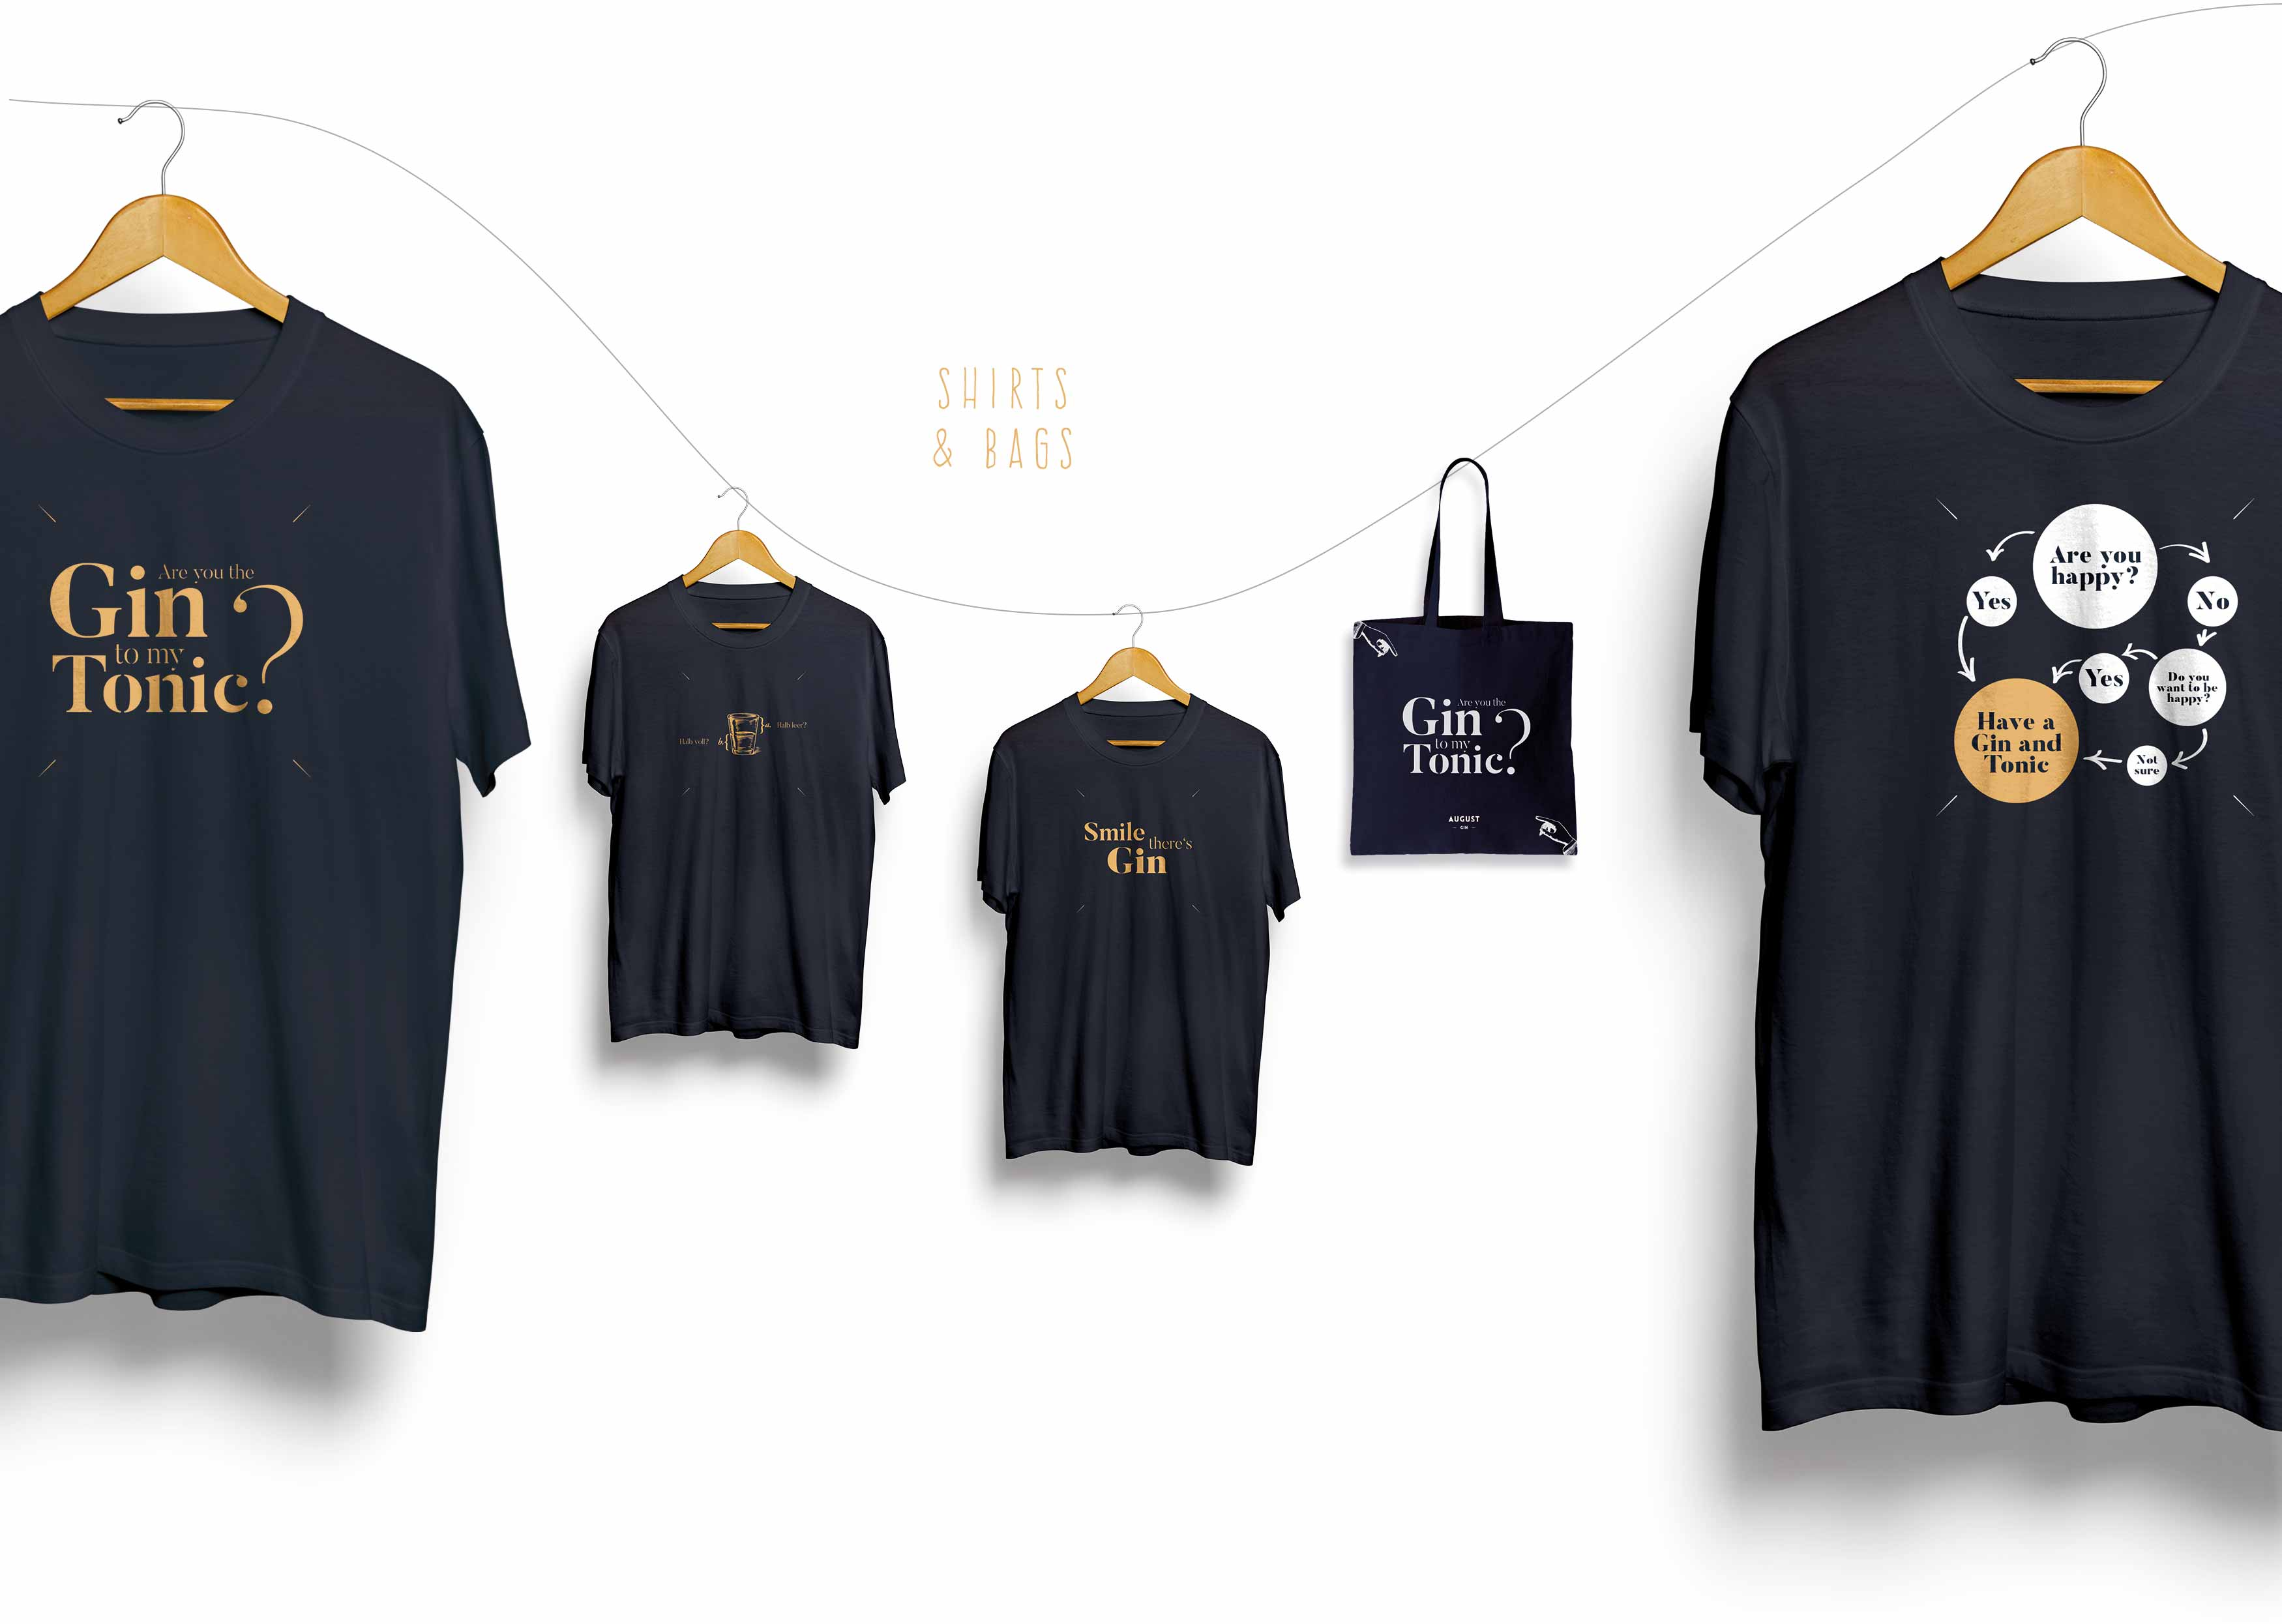 4-t-shirts-tote-bag-august-gin-augsburg-design-branding